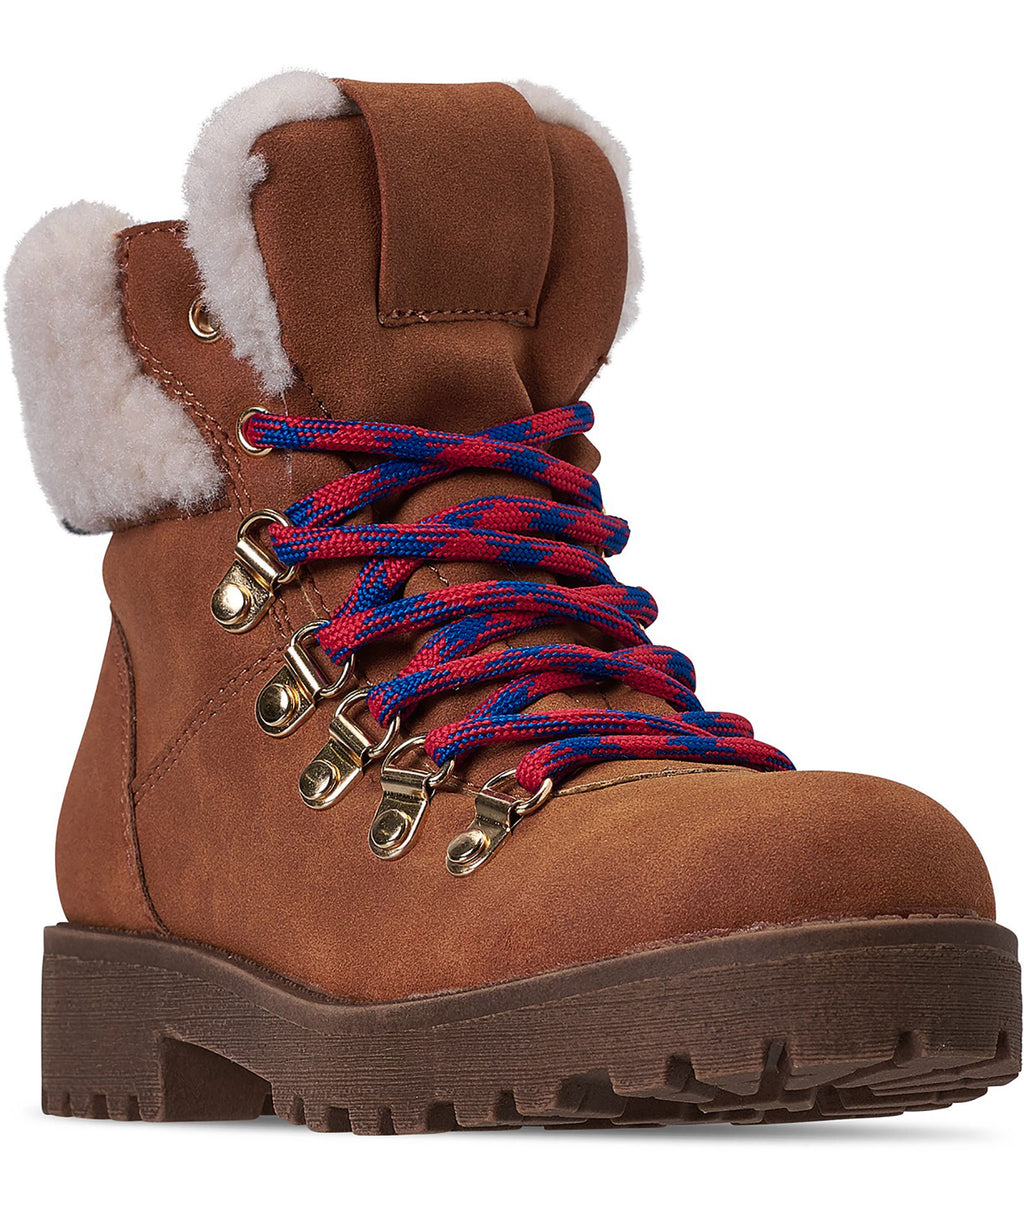 Steve Madden Girls JBoadway Cognac Lace Up Boots